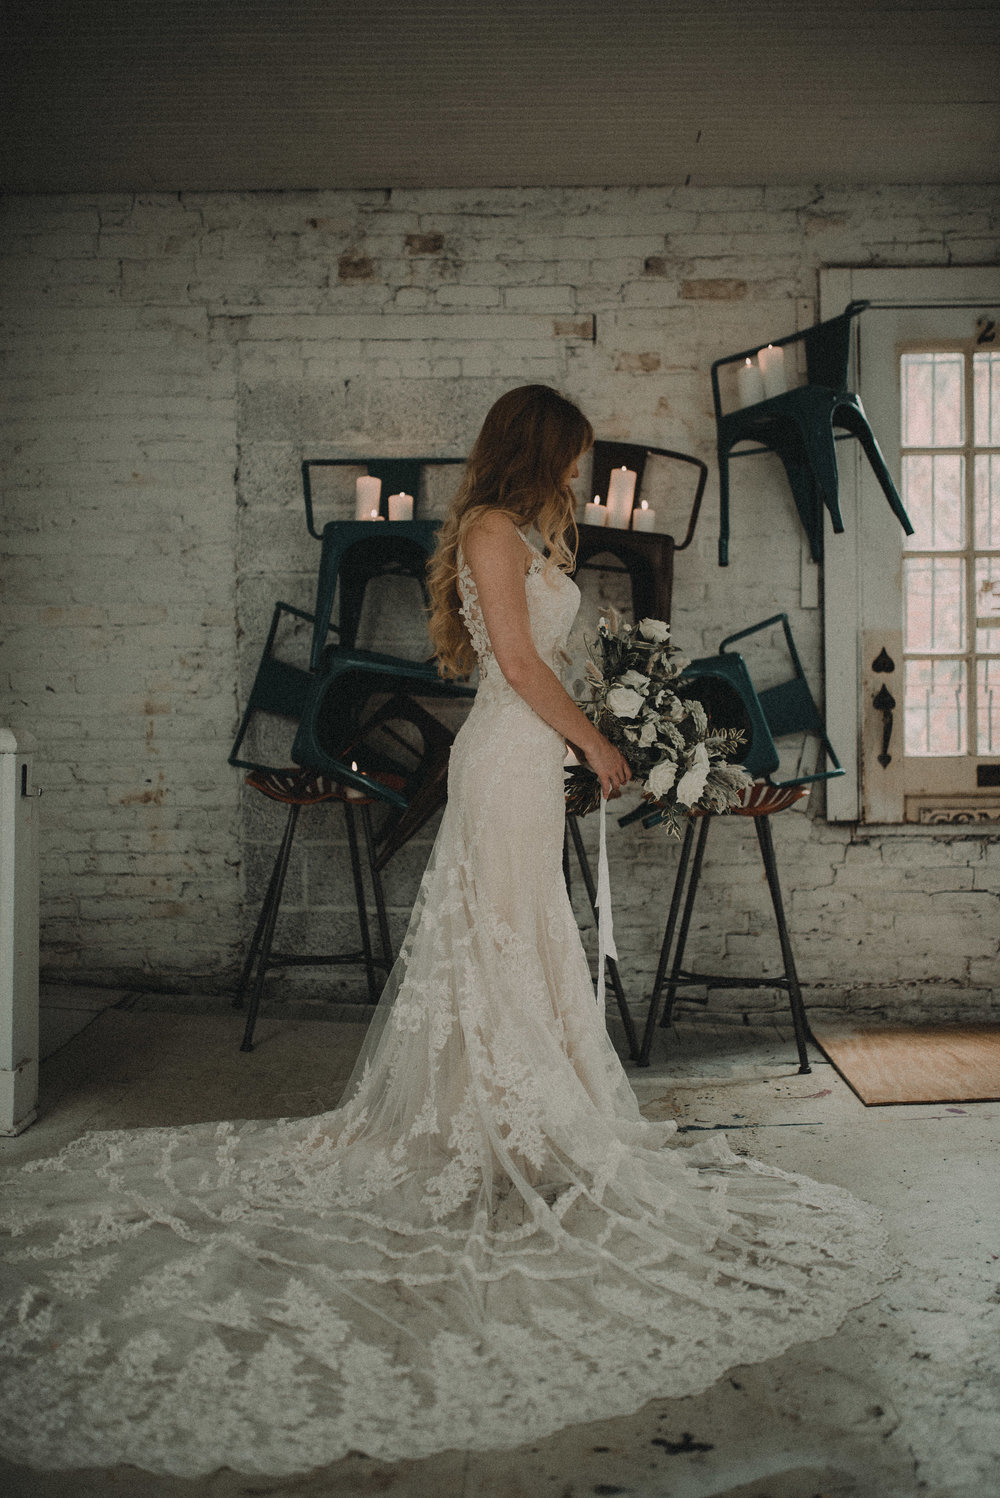 Bride in dress in front of levitating chairs